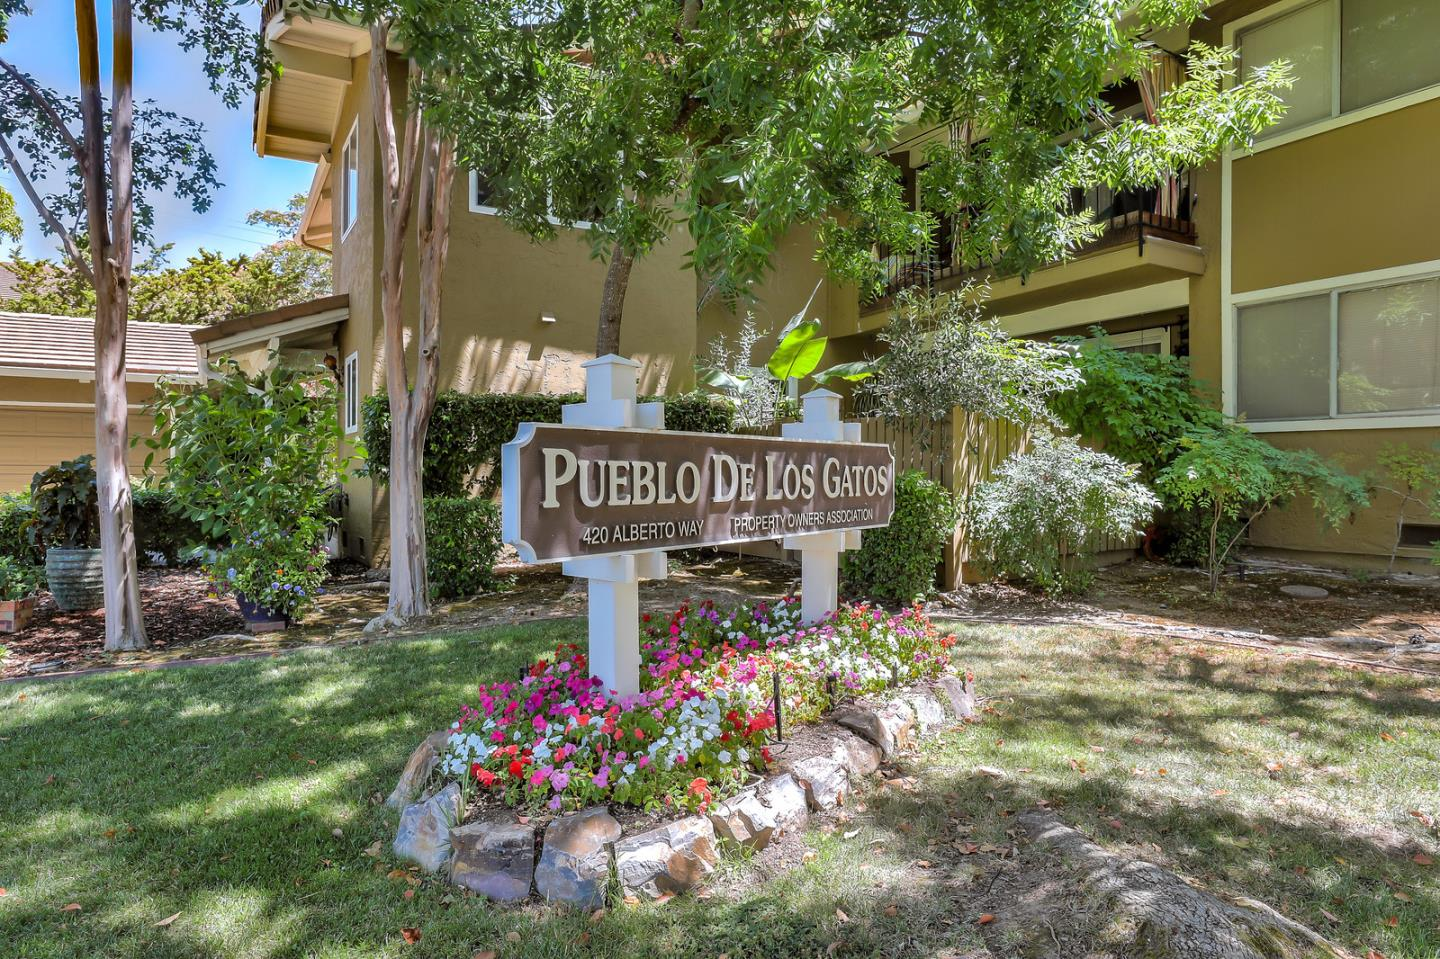 Lovely single level condo in Pueblo de Los Gatos. Updated kitchen and bathrooms, stainless steel appliances, convection oven, tile flooring, and cozy fireplace. Newer dual pane windows, indoor laundry, master bedroom has a walk-in closet. Washer, dryer, and refrigerator are included in the sale. Great location within walking distance to downtown, close to restaurants, shops, library, and the Los Gatos Creek Trail. Excellent schools, and easy access to Highway 17. Pueblo de Los Gatos is an all age and pet friendly community. Enjoy the best of times in this wonderful community!